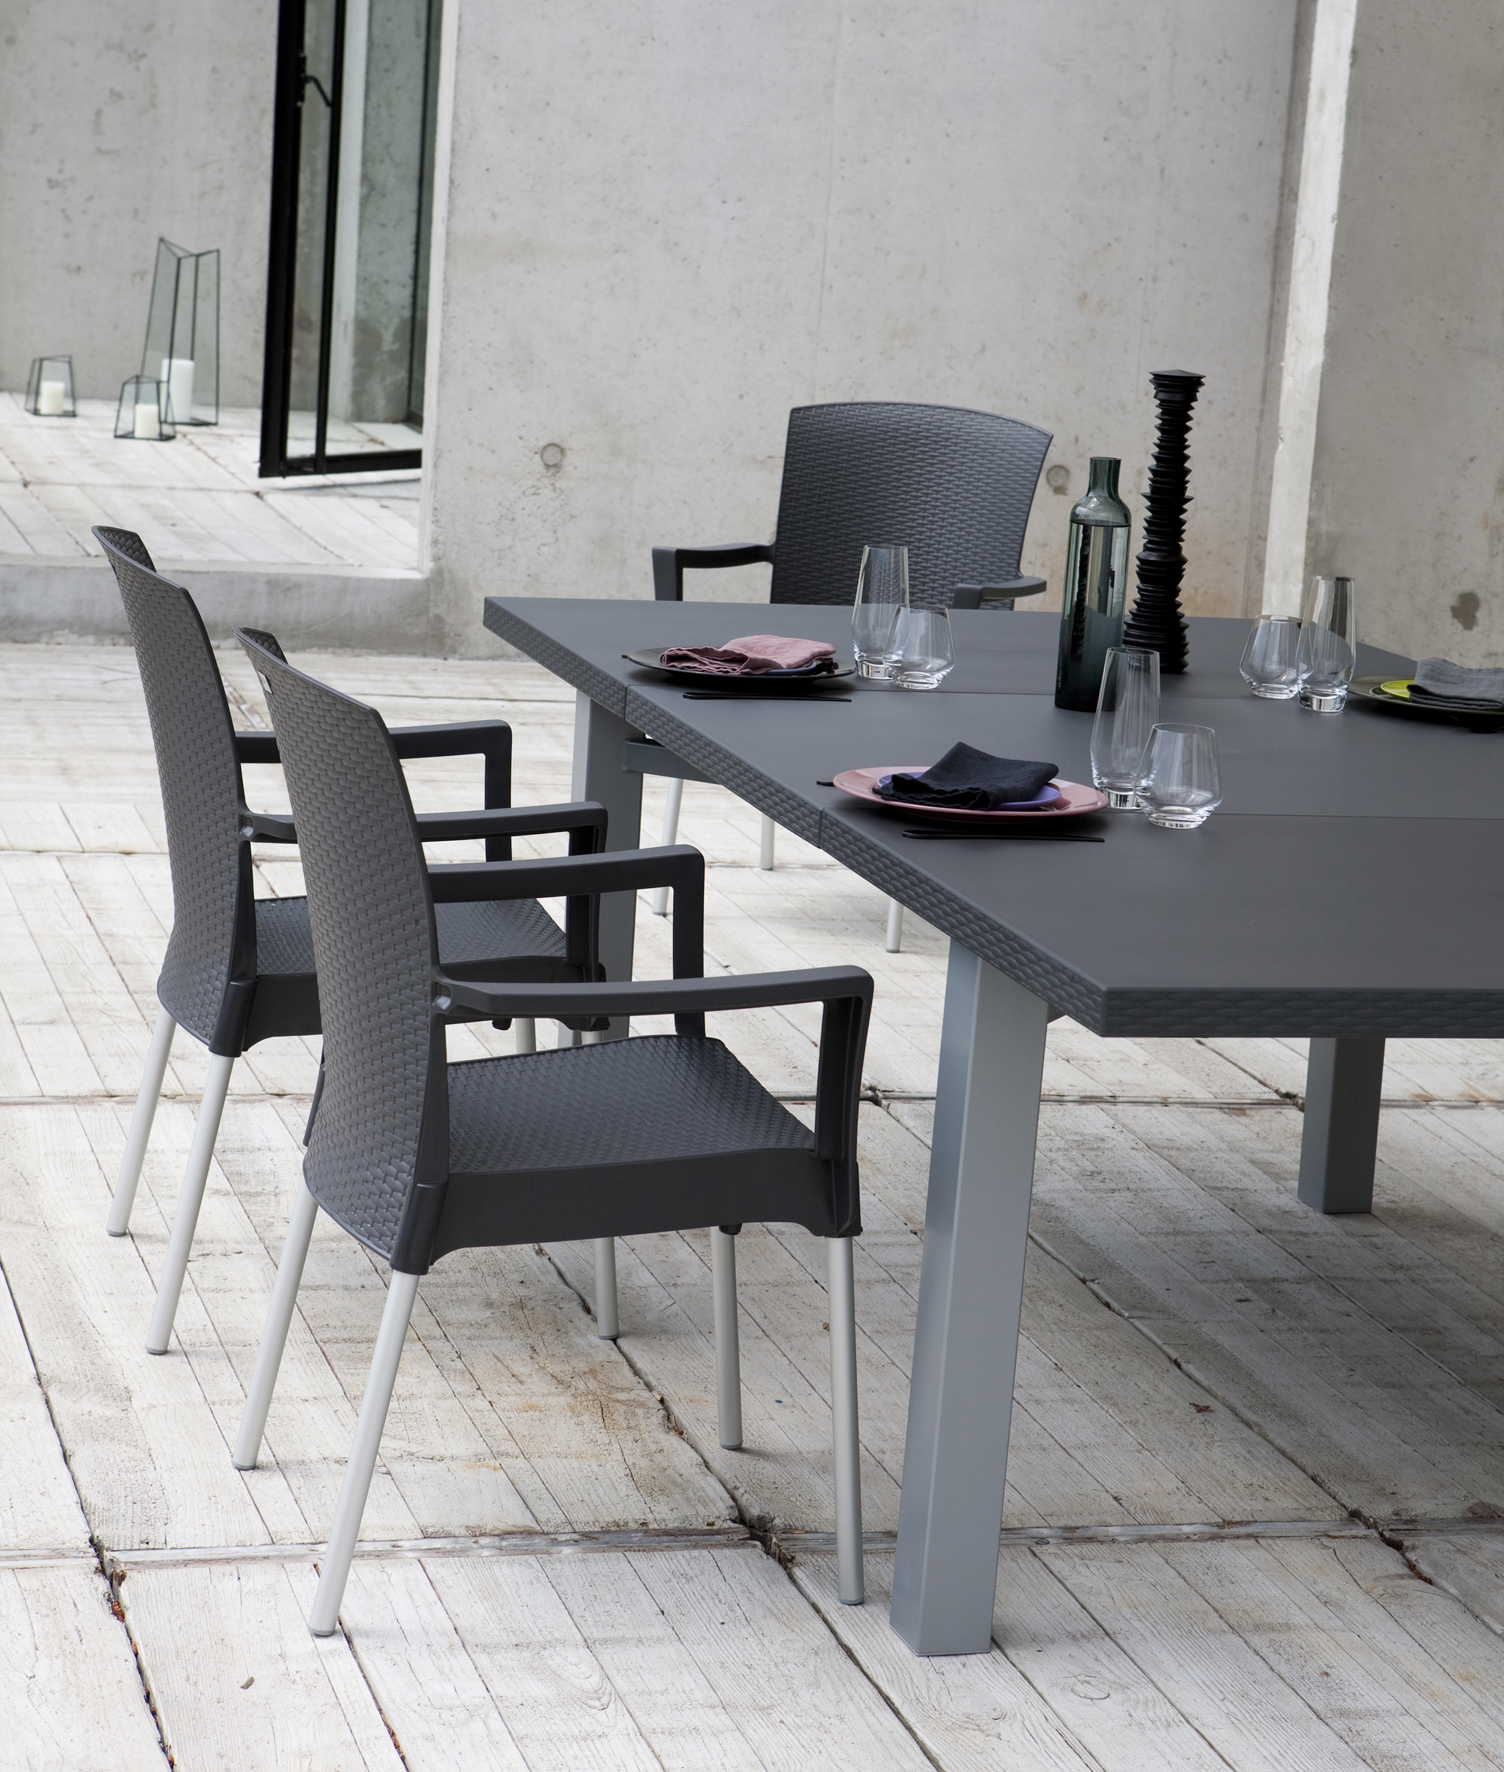 Ineo garden furniture | Grosfillex